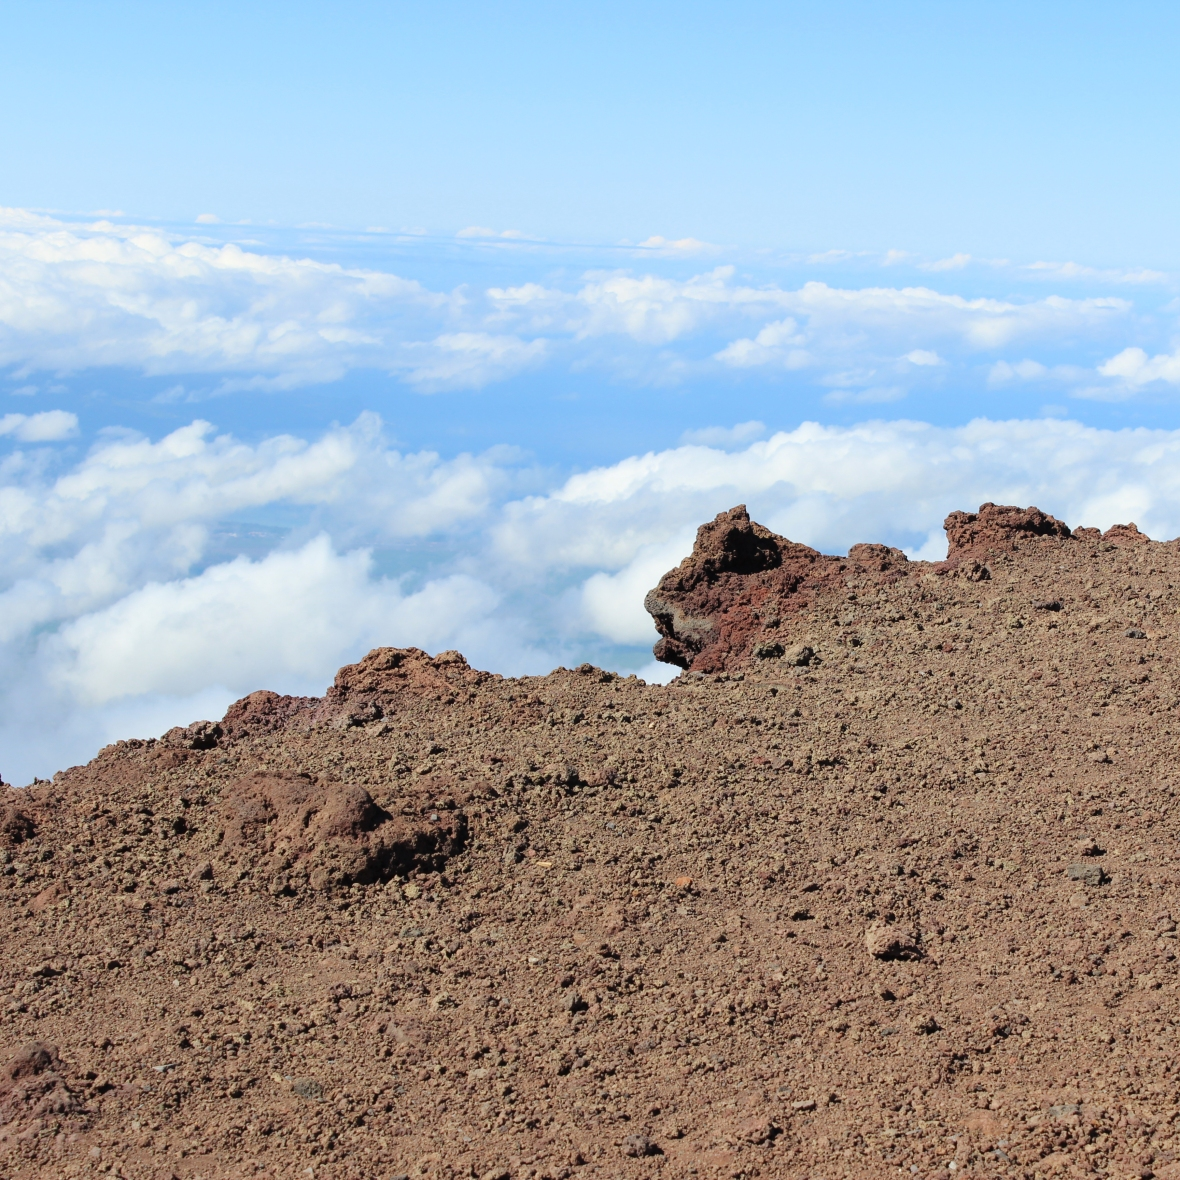 The edge of Haleakala Volcano